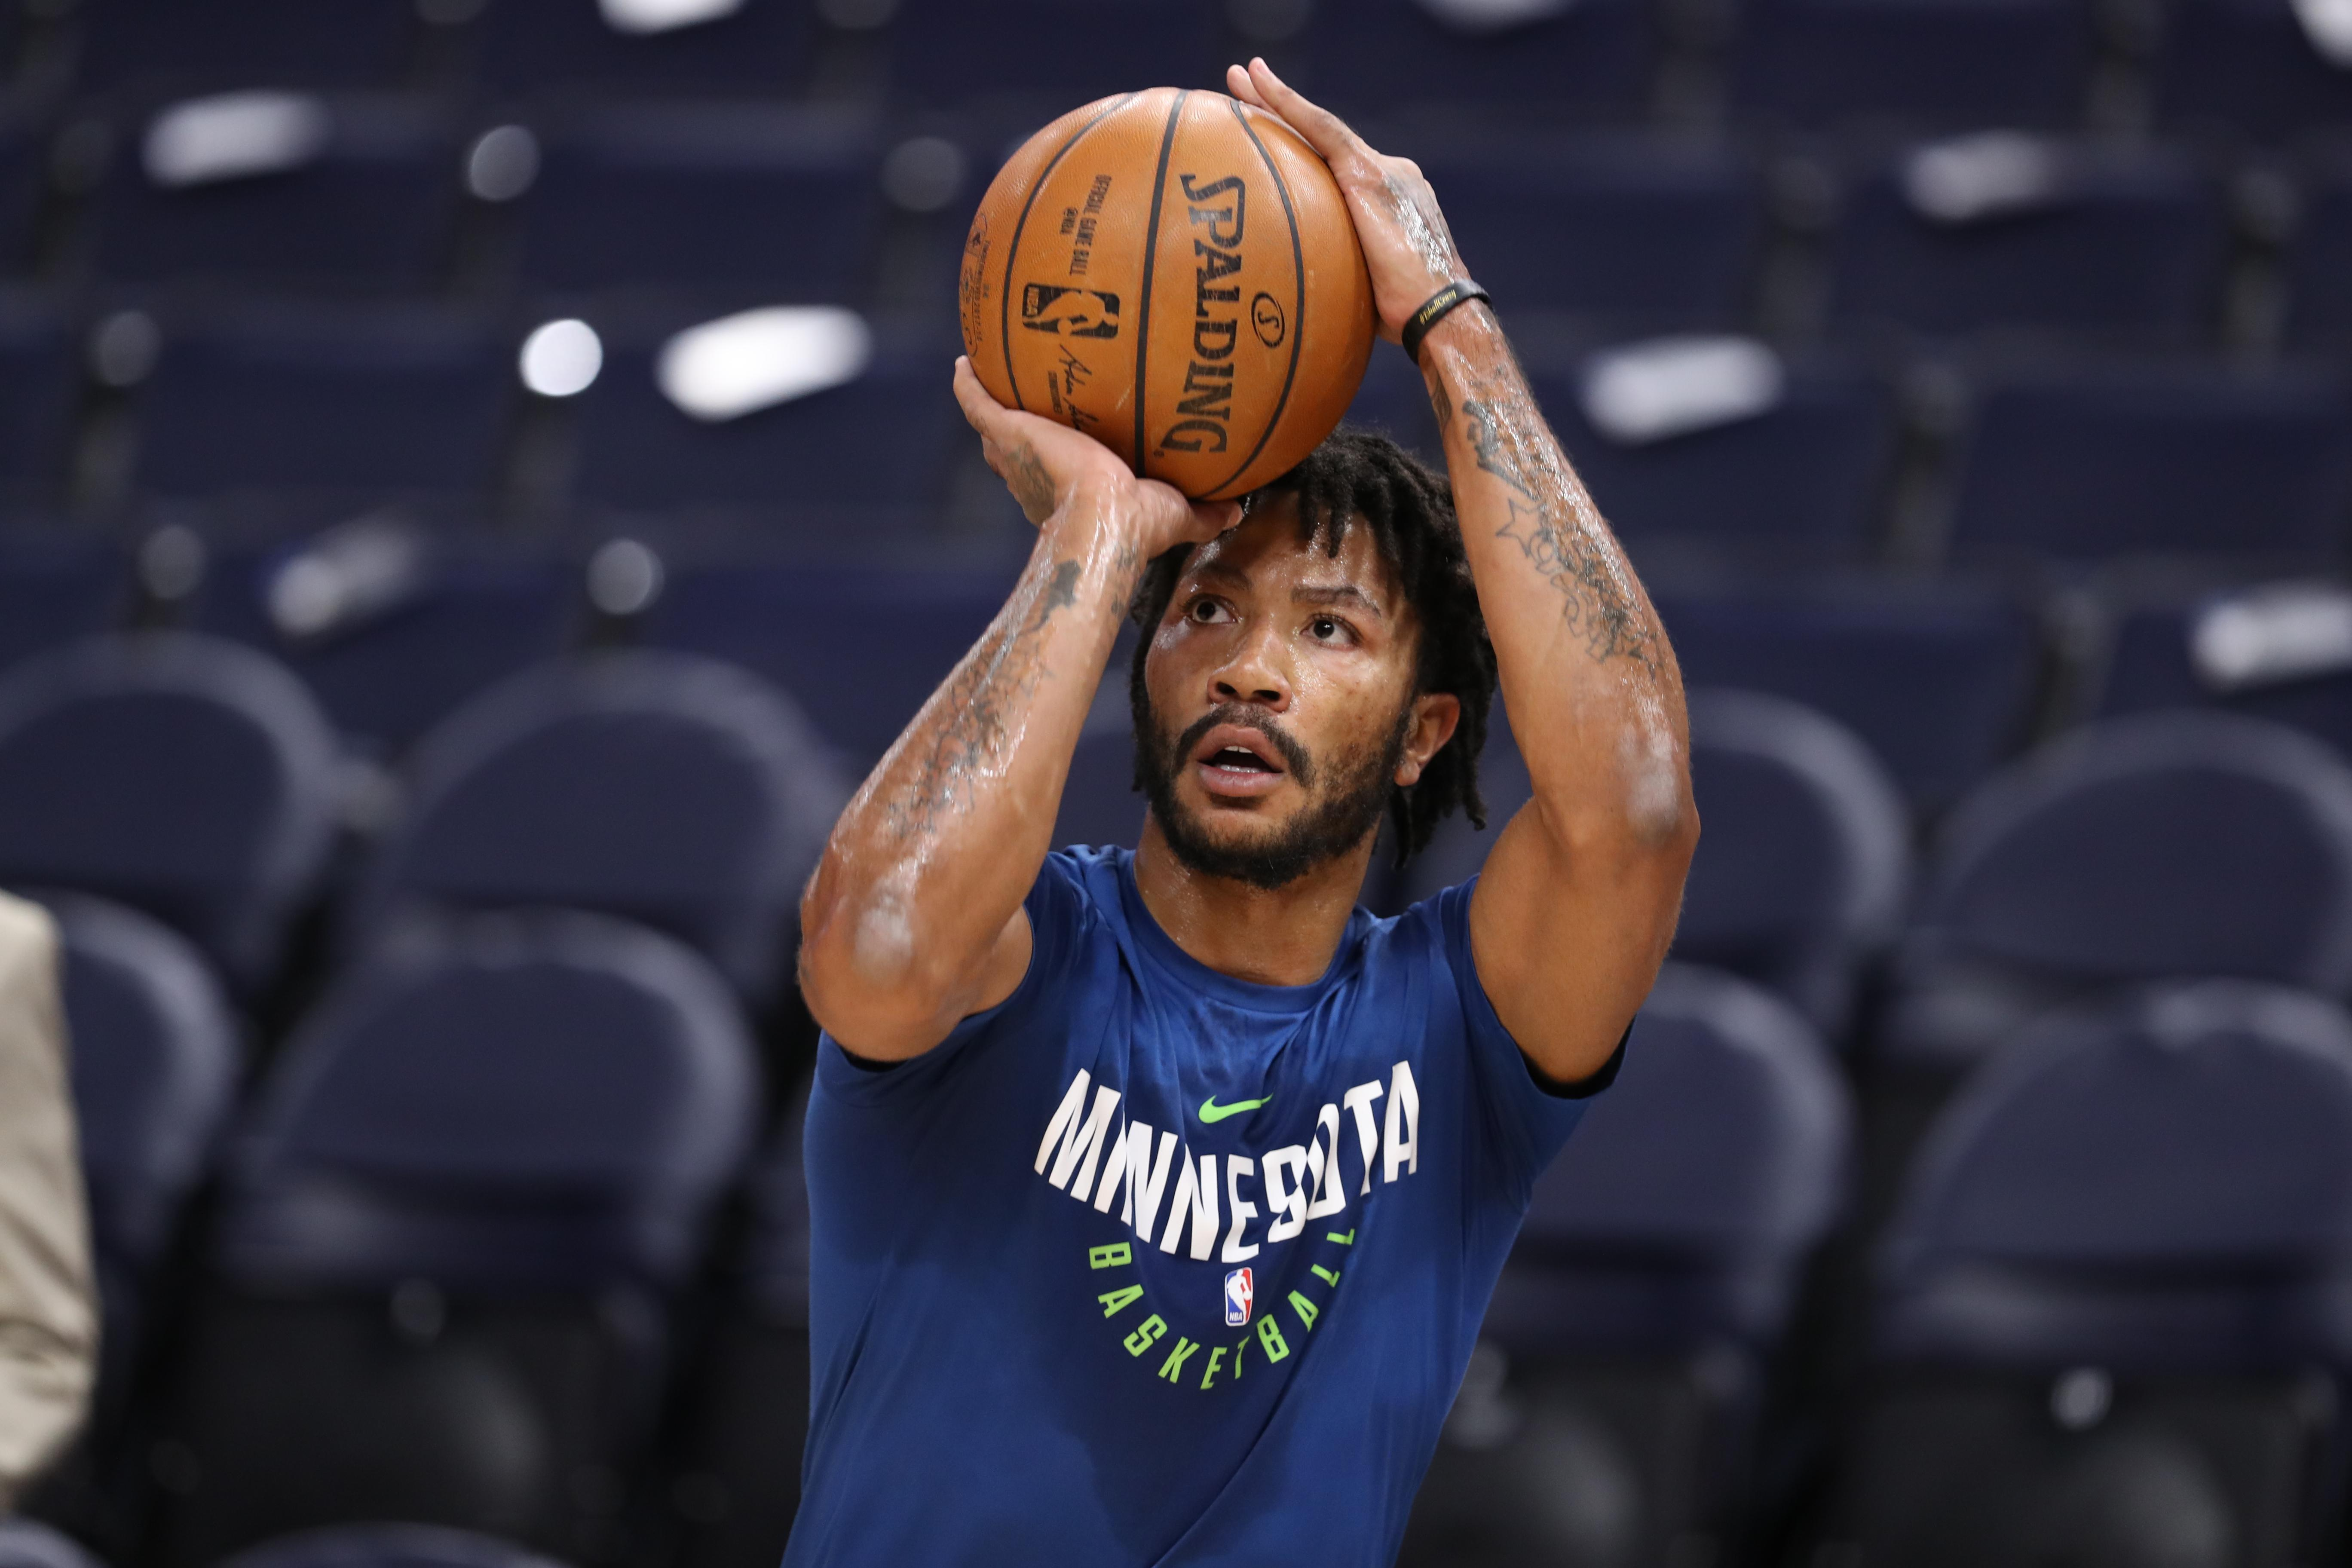 Derrick Rose blocks out doubters as he starts new journey in